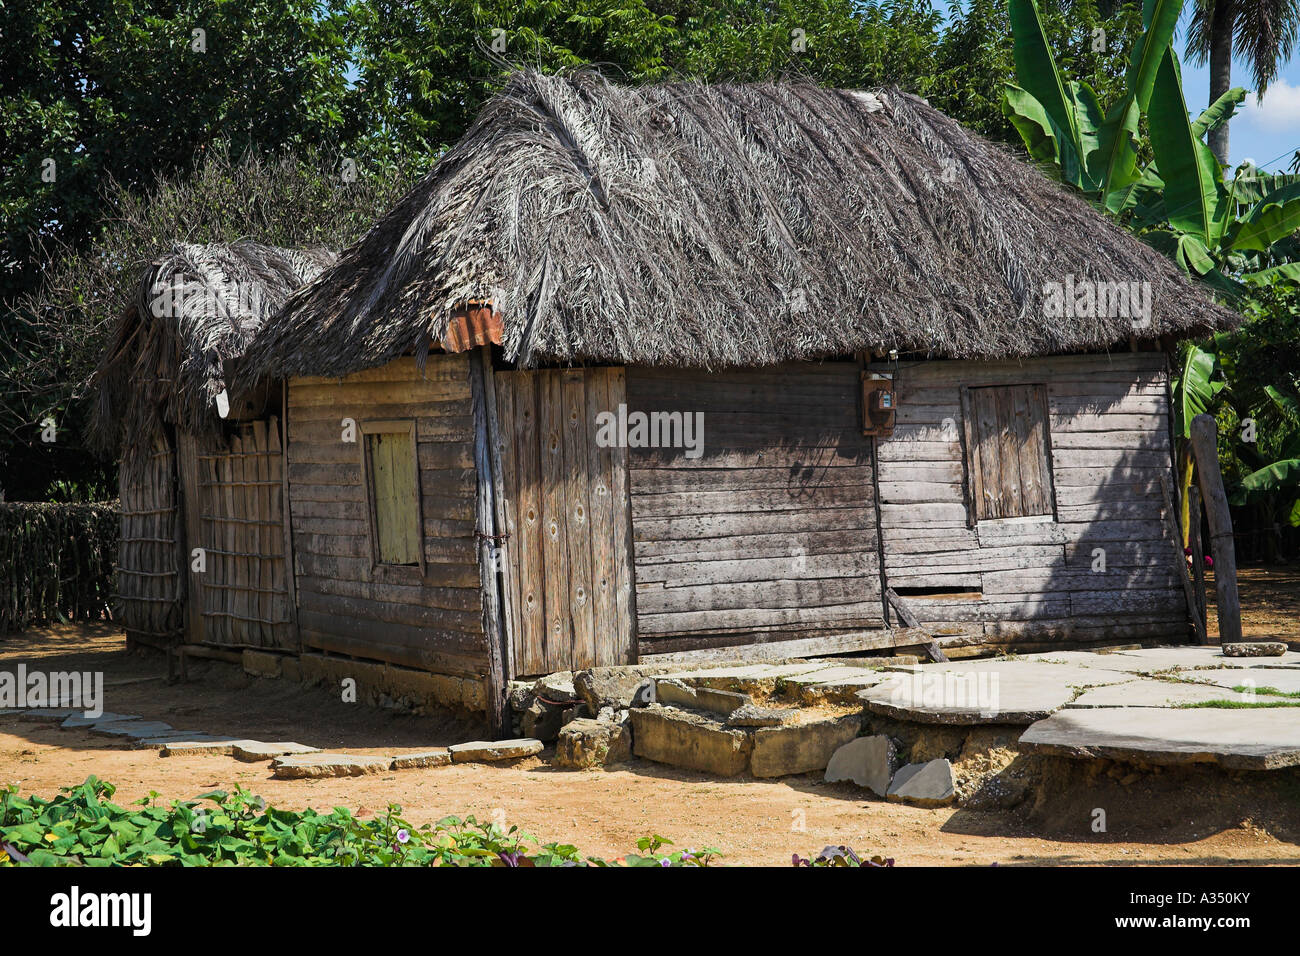 House constructed from wood with a palm tree leaf roof, Camera Village, near Santiago de Cuba, Cuba - Stock Image